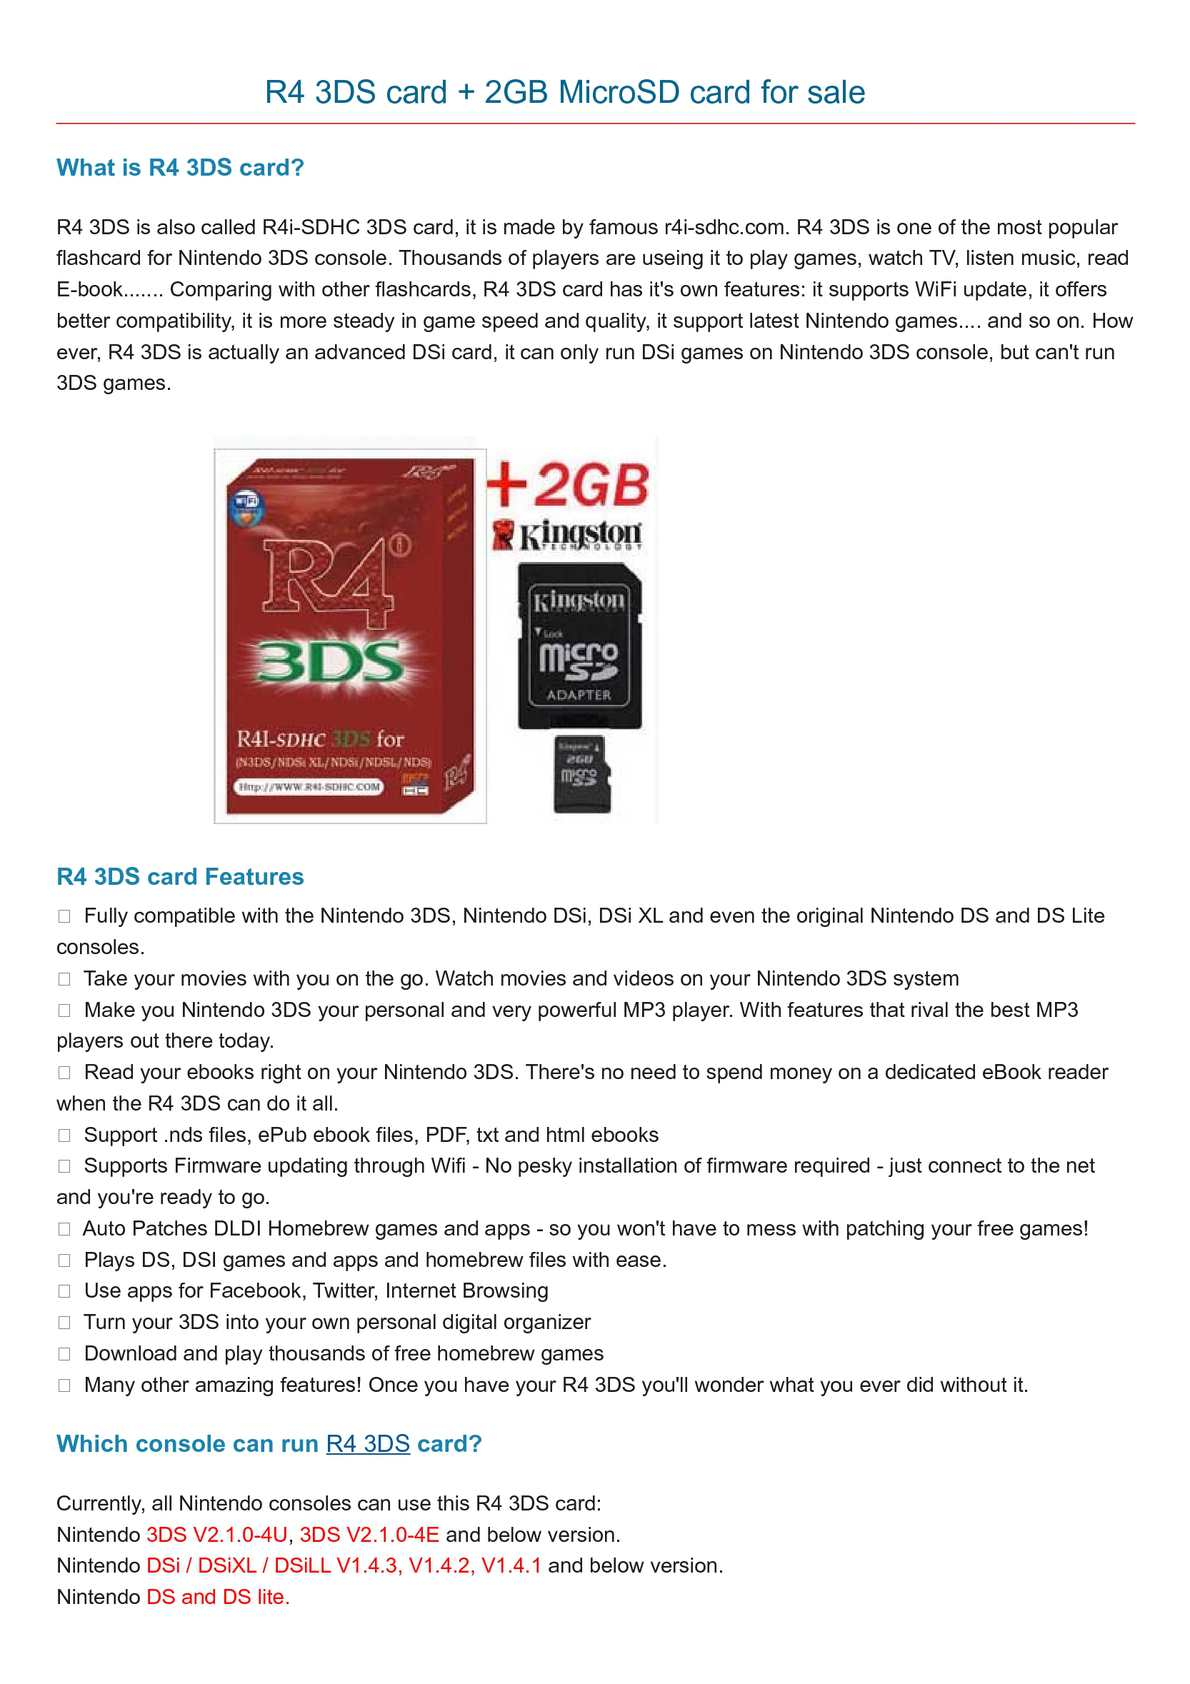 Calaméo - R4 3DS card plus 2GB Kingston memory for sale